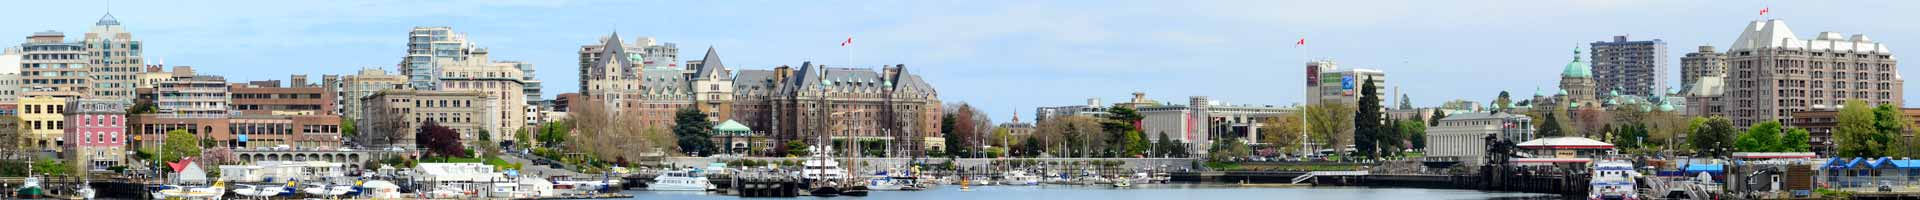 Downtown Victoria harbour skyline showing the Empress Hotel, Royal BC Museum, Legislative Assembly of British Columbia and much more.